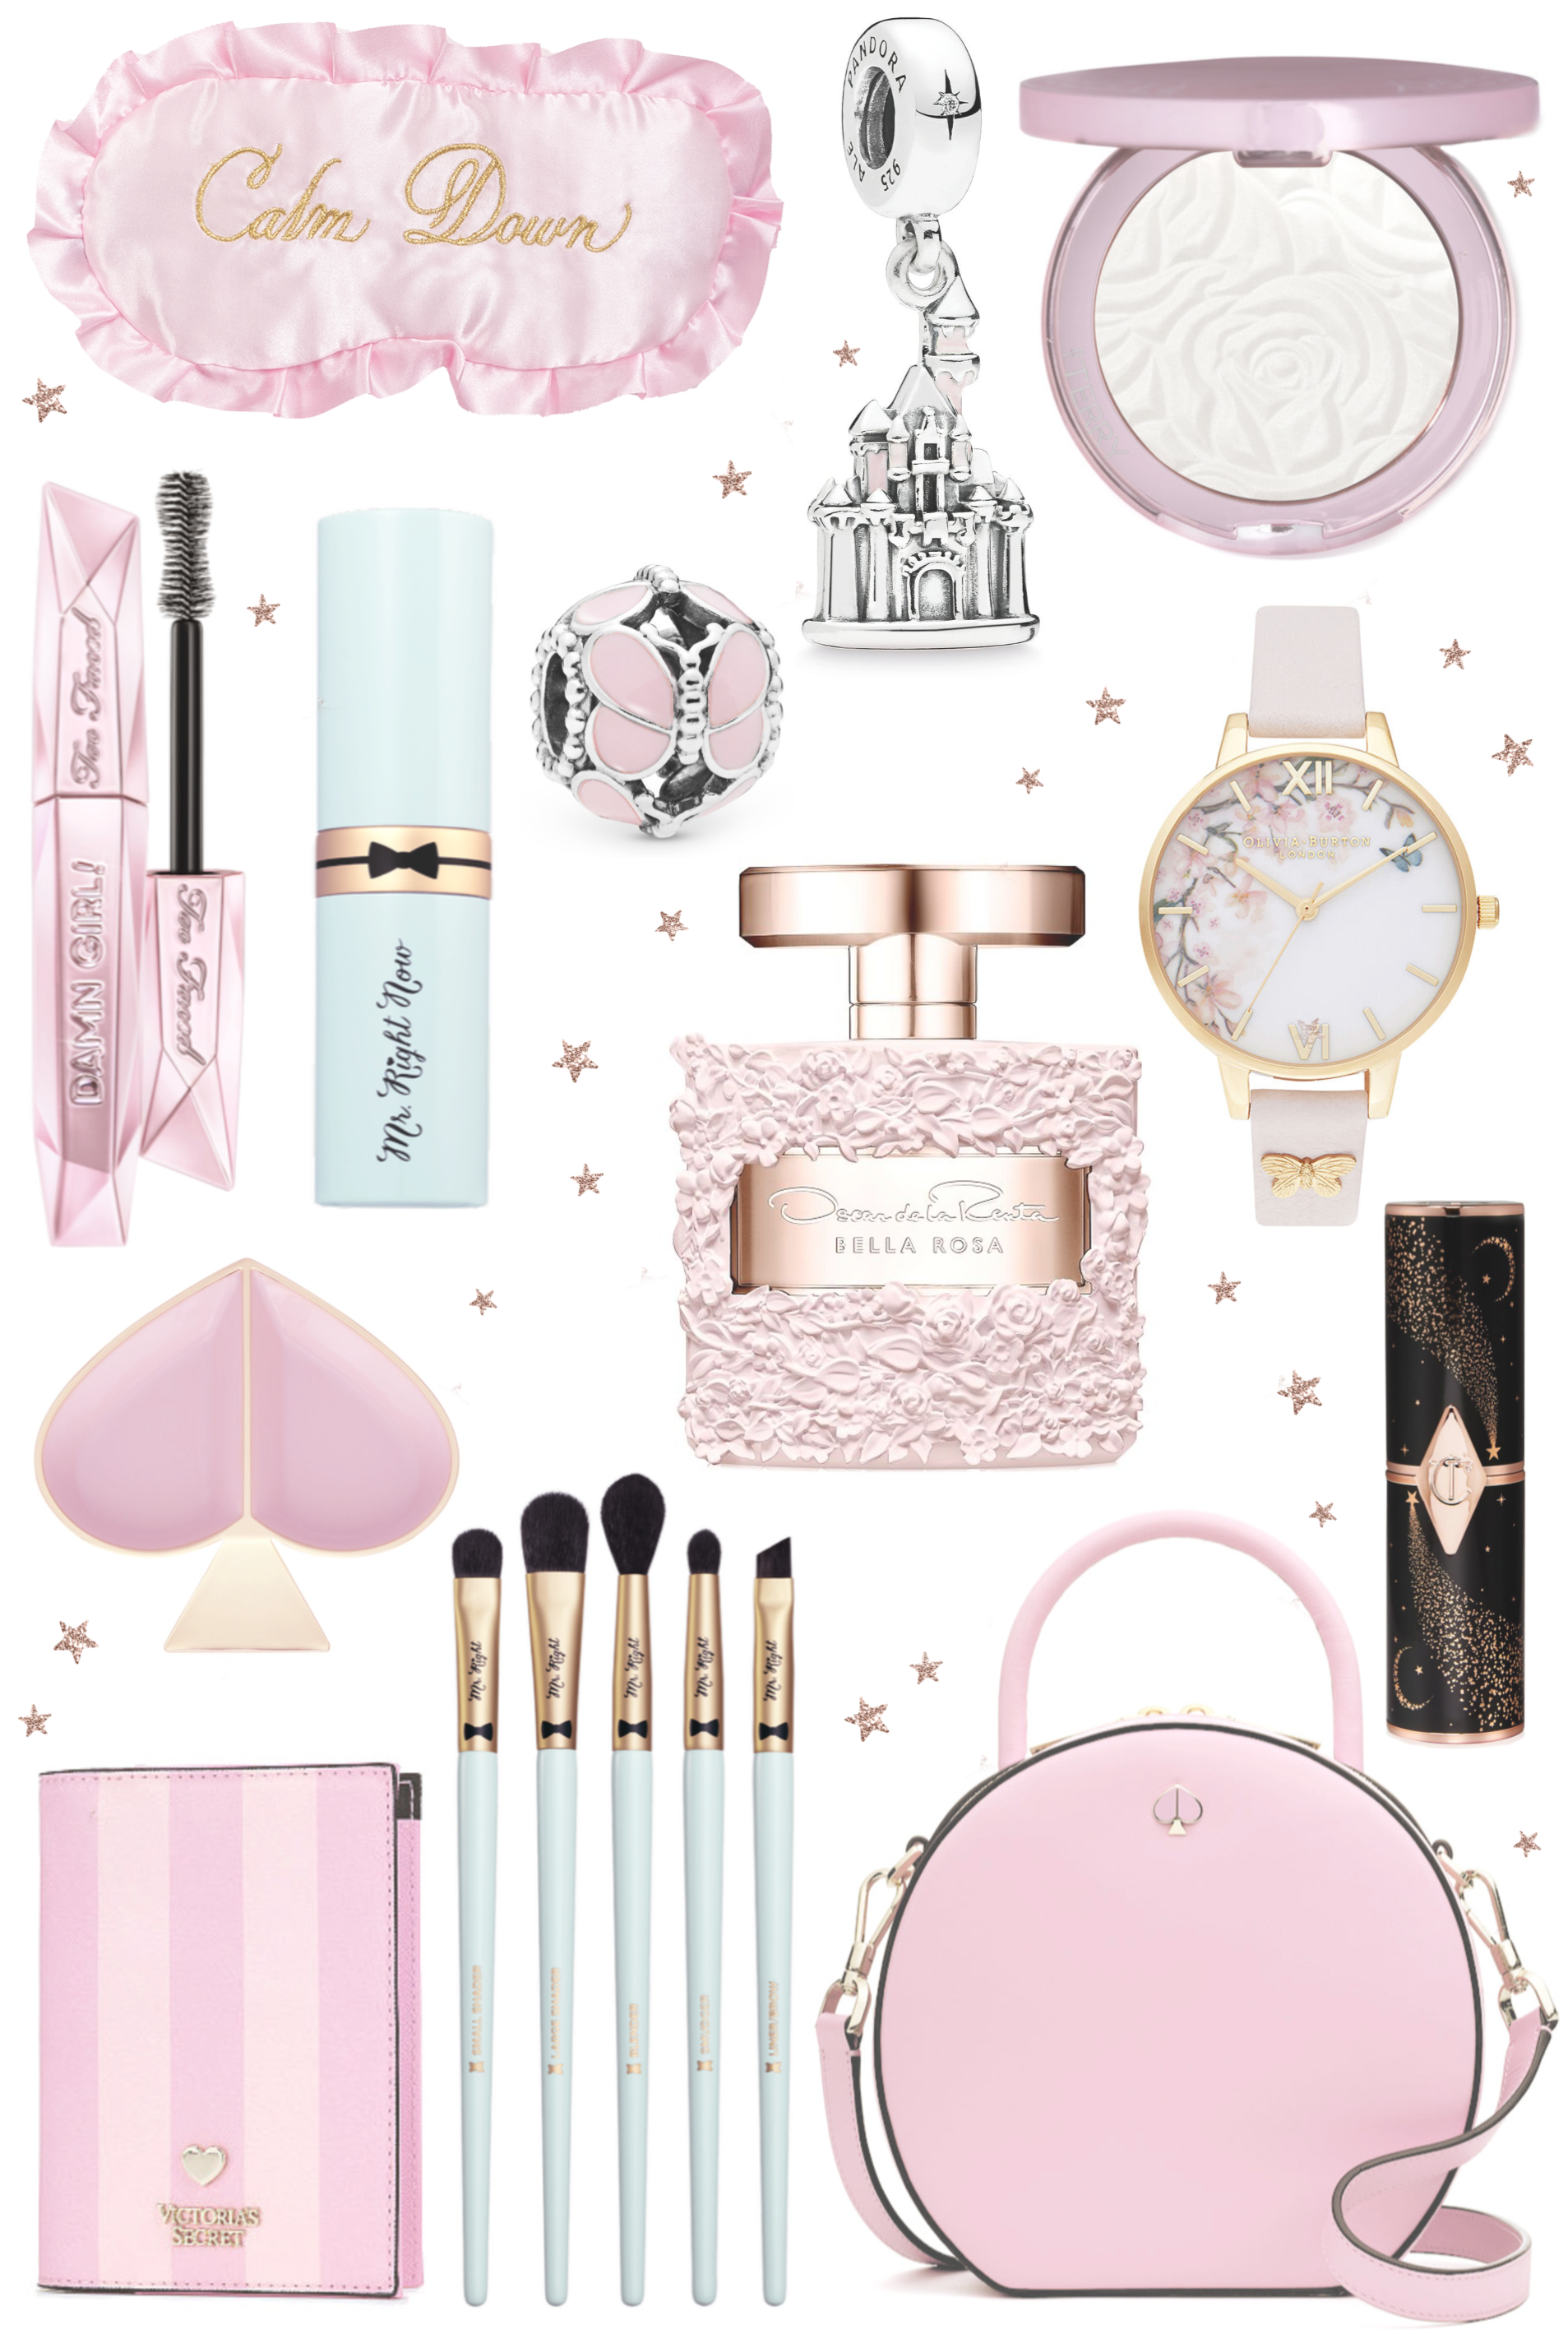 Trinkets & Treasures: A Pretty Princess Wishlist